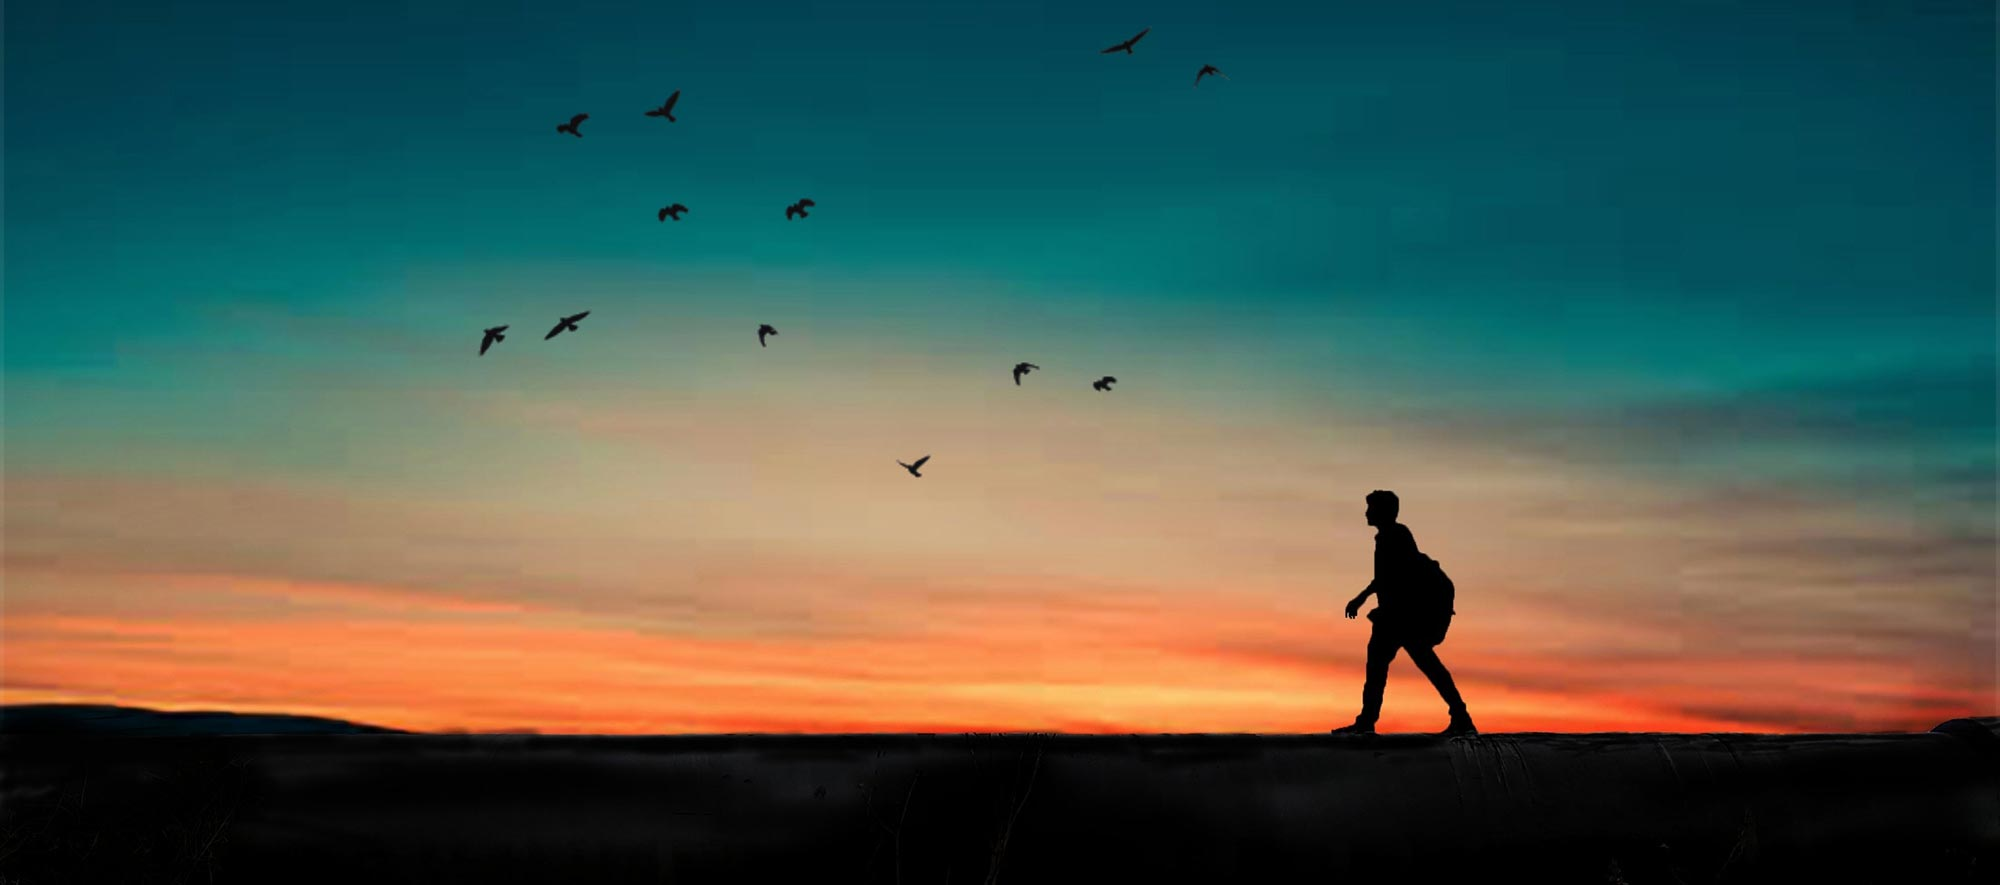 Silhouette of Person Walking At Sunrise With Beautiful Sky in Background